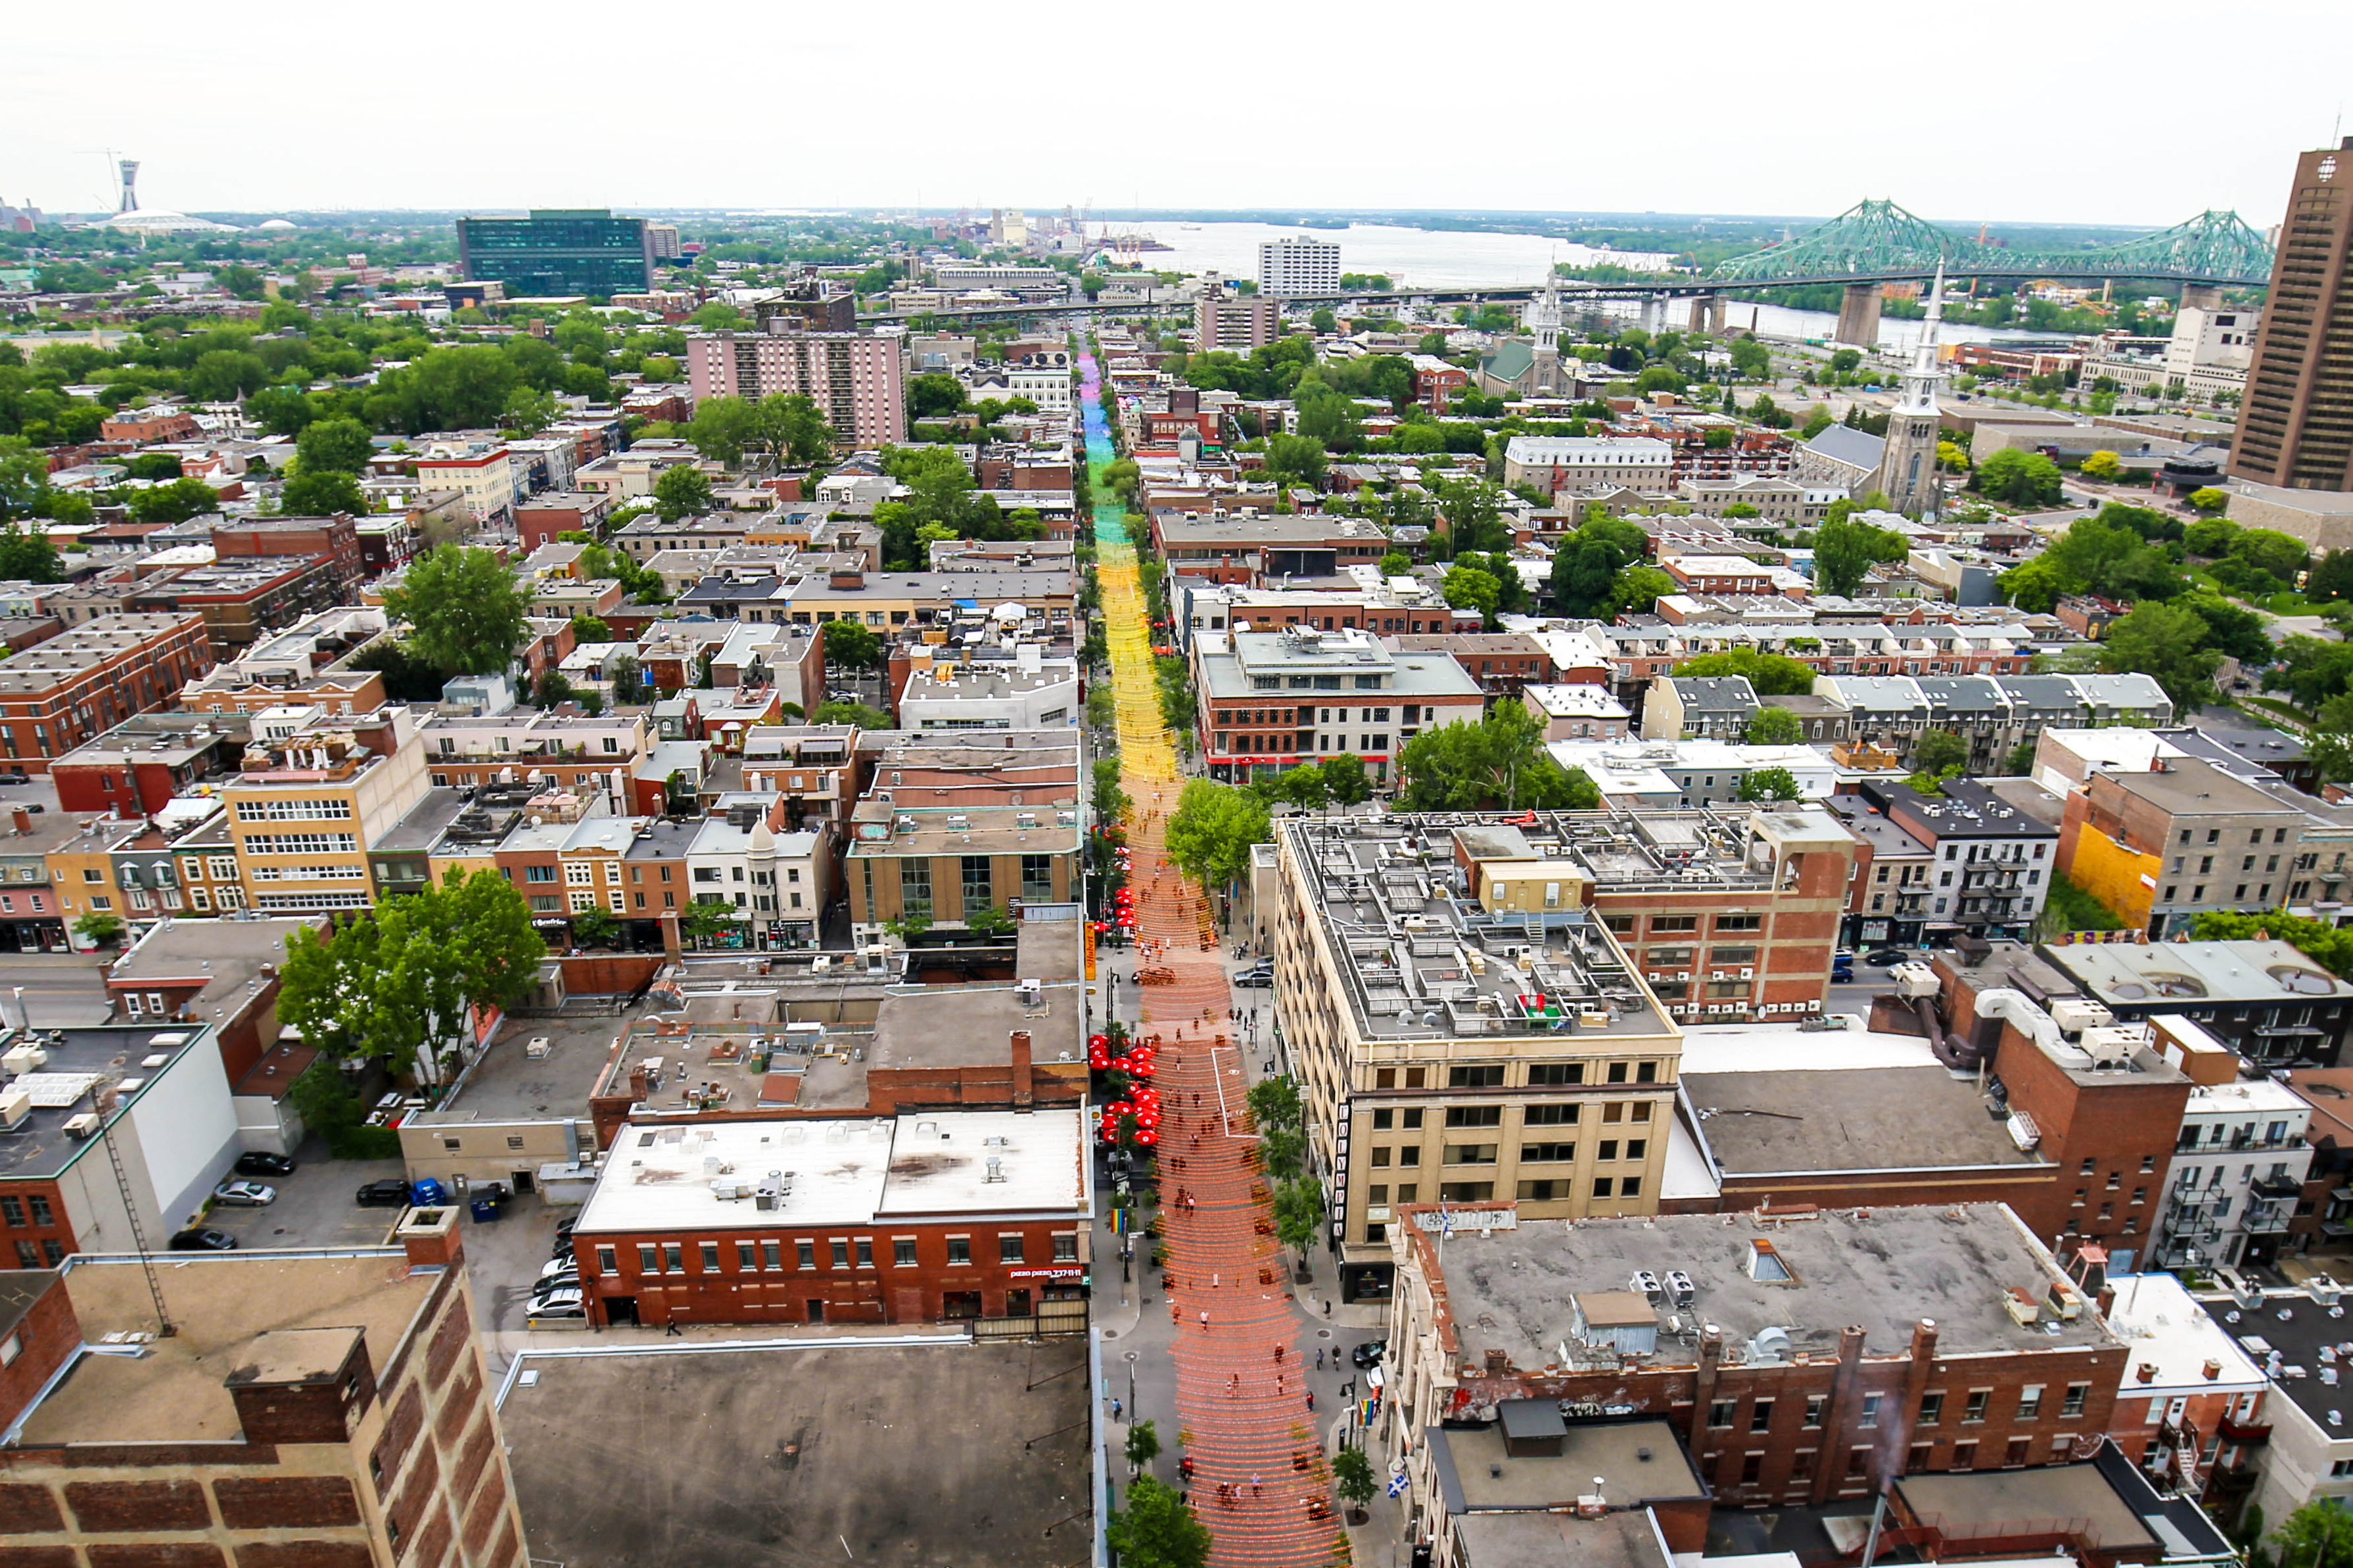 urban planning curbed